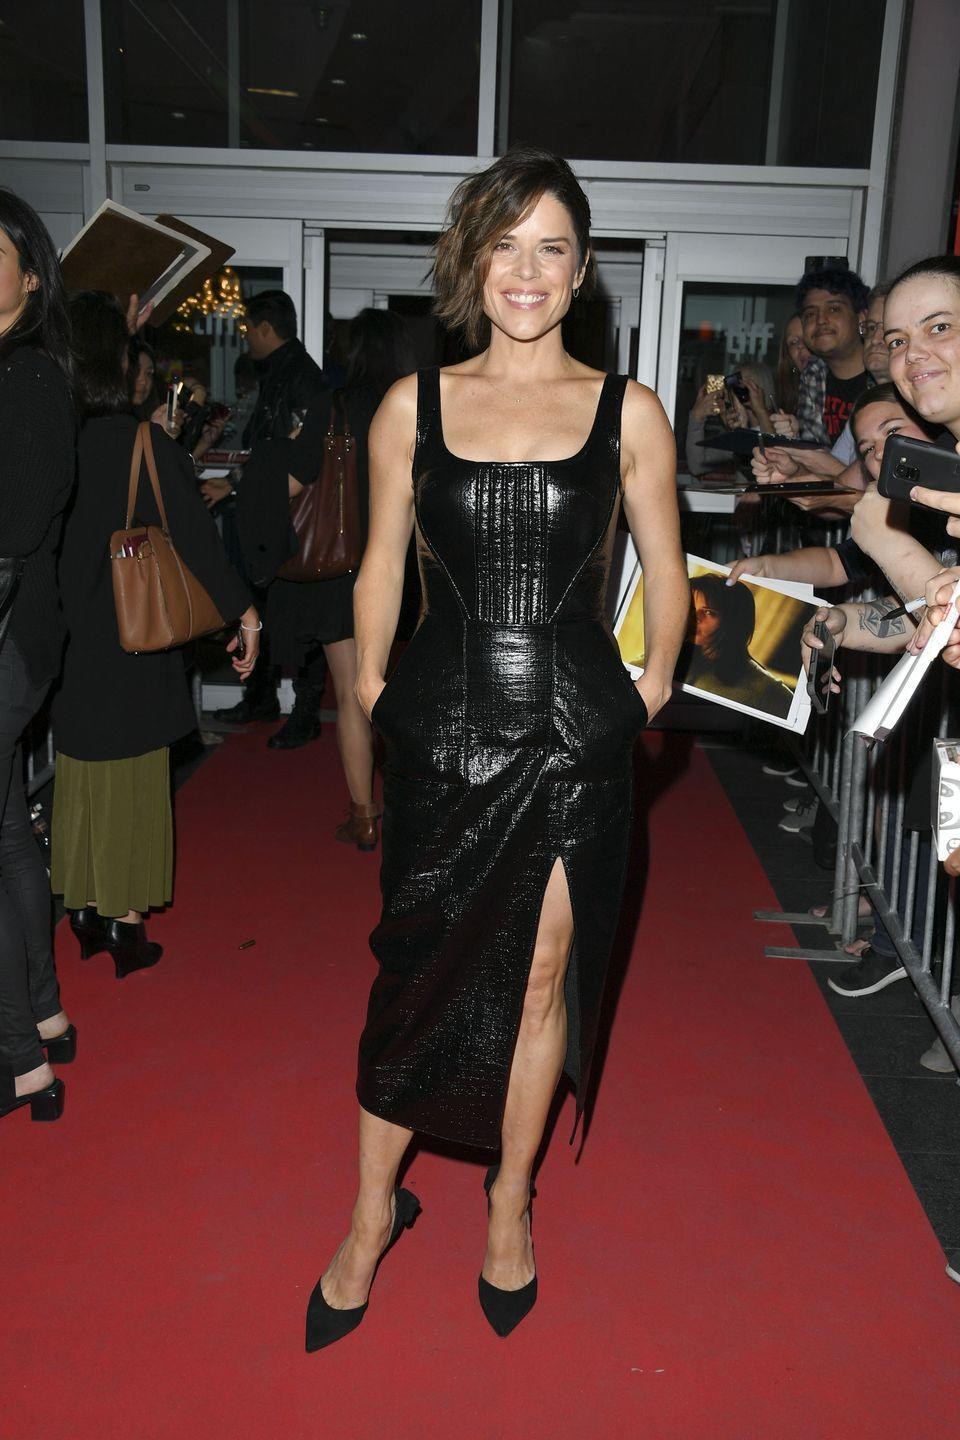 <p>Campbell's career has been a bit more quiet in the last several years. She has appeared in a few shows, like <em>Manhattan</em> and <em>House of Cards</em>, in addition to starring in some independent films.</p>